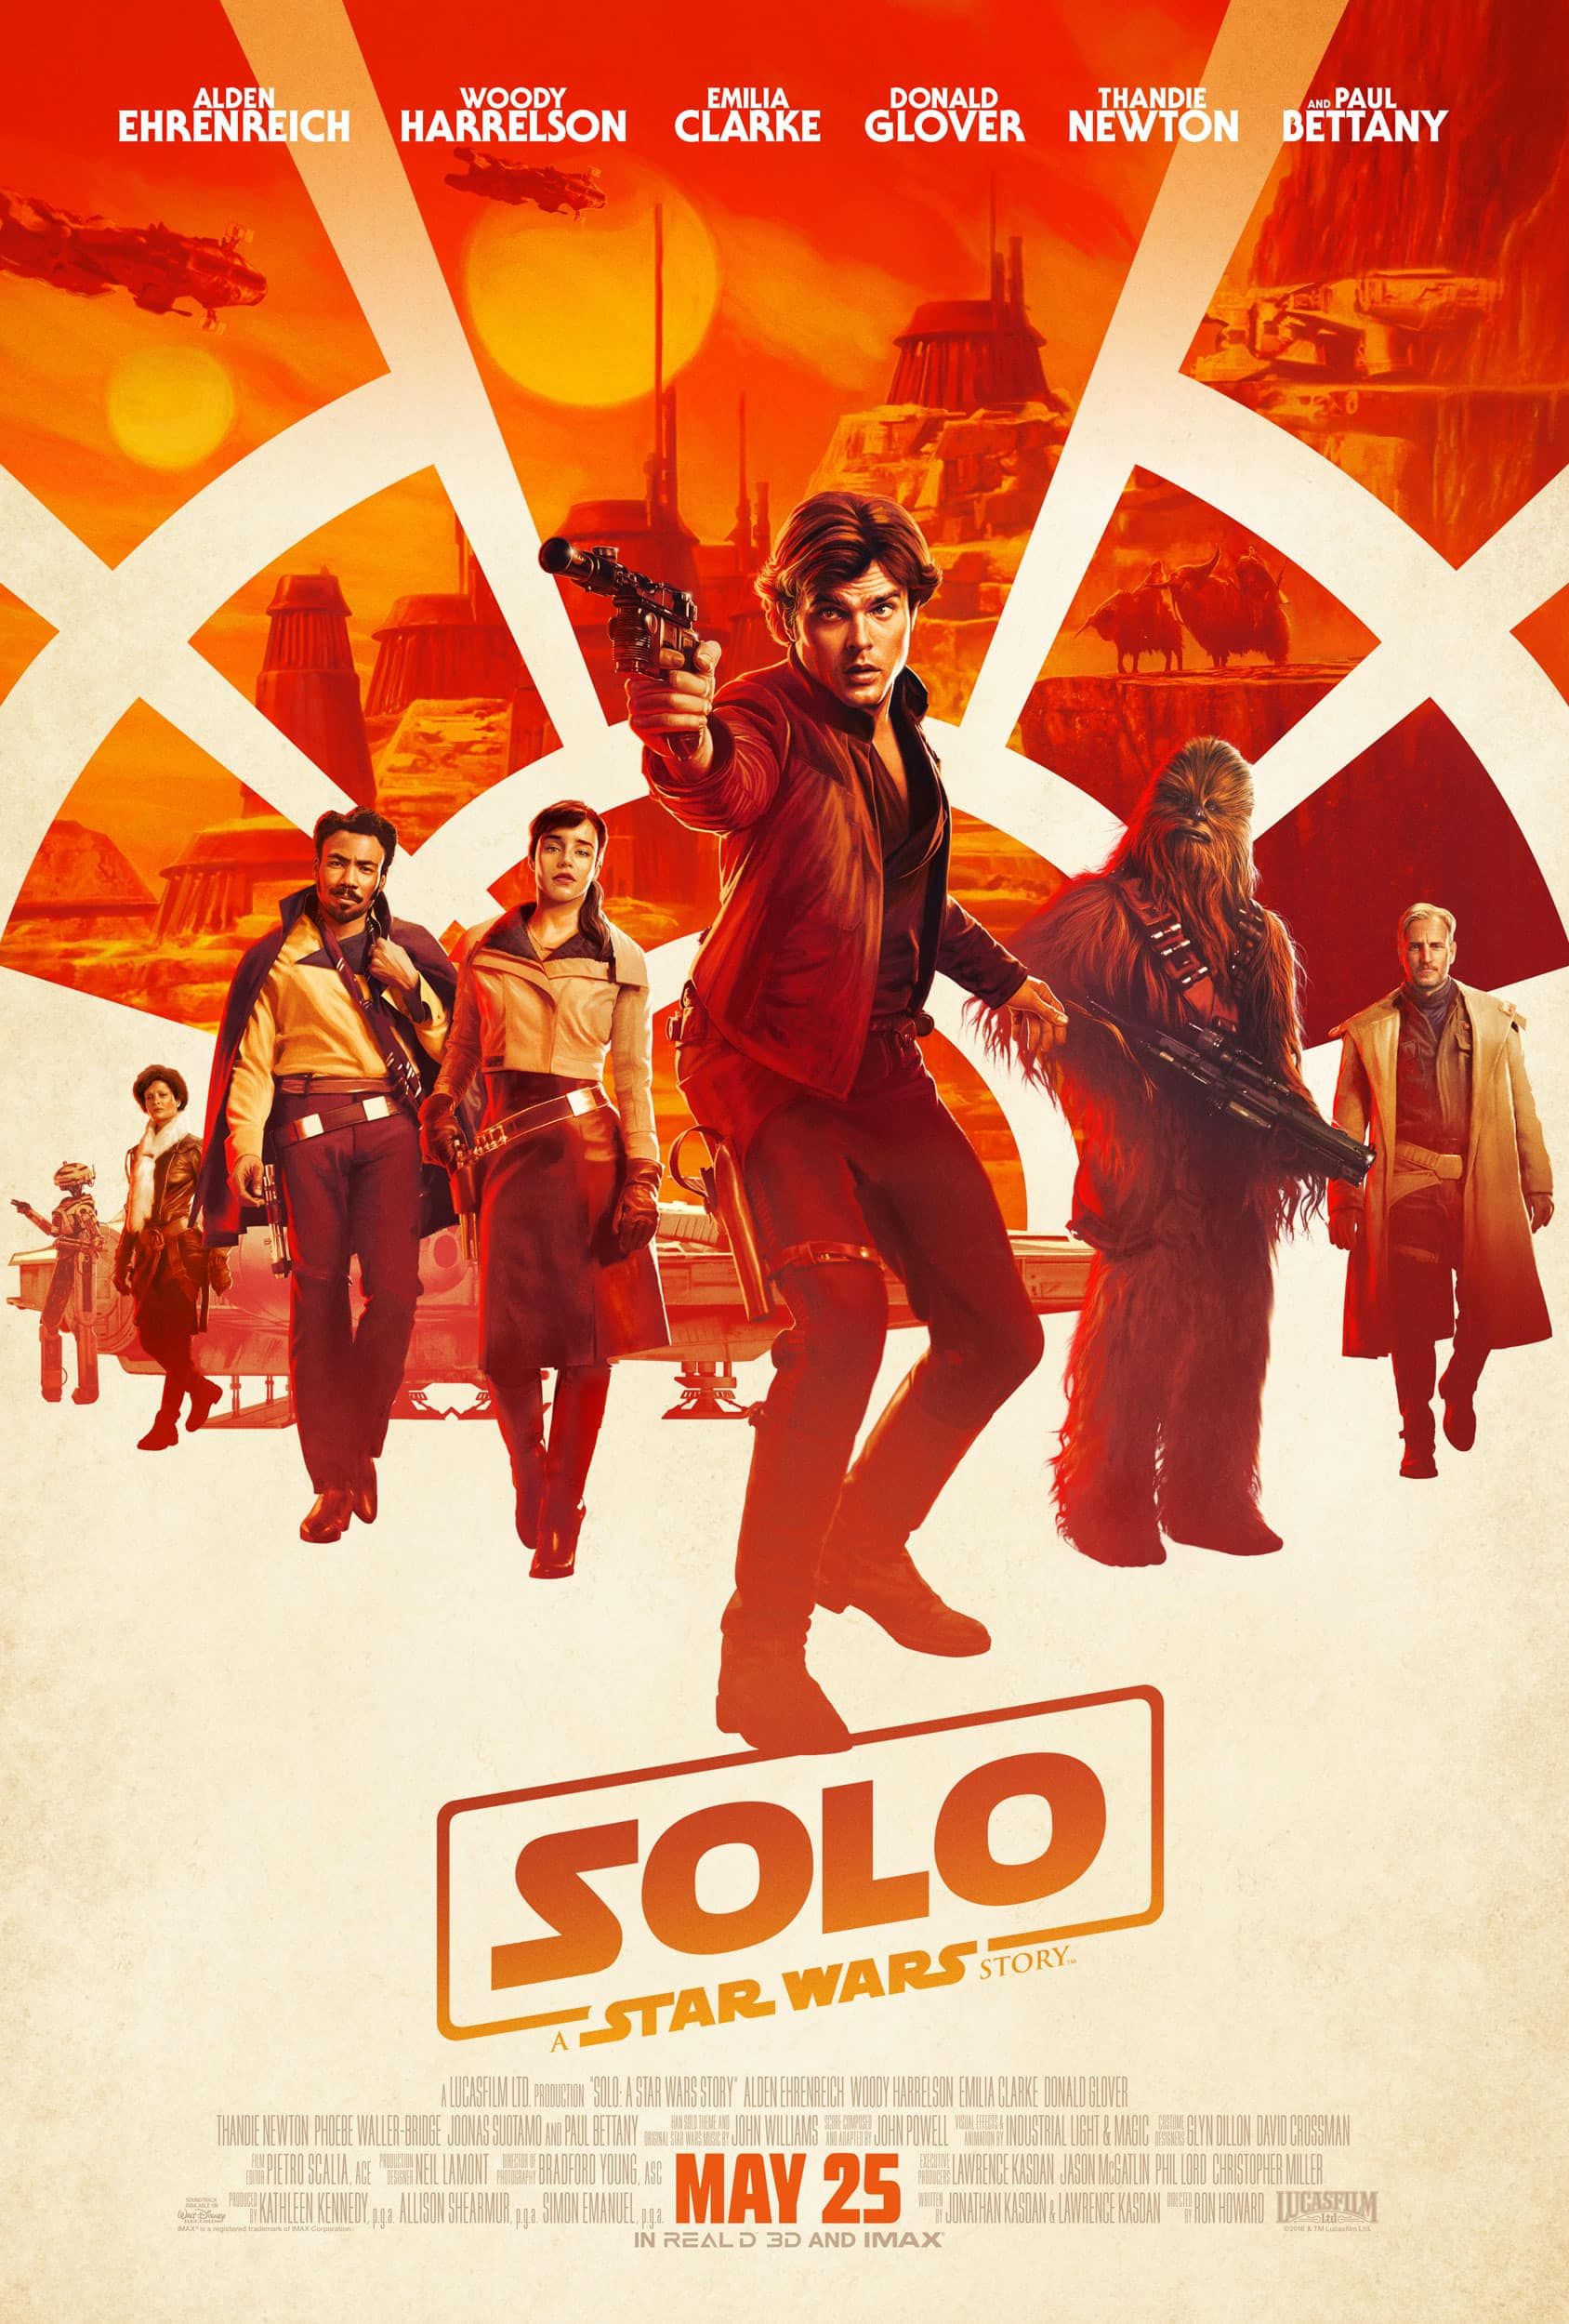 AMC Theatres Stubs: 1,000 bonus points to see SOLO: A STAR WARS STORY 6/7–6/10.